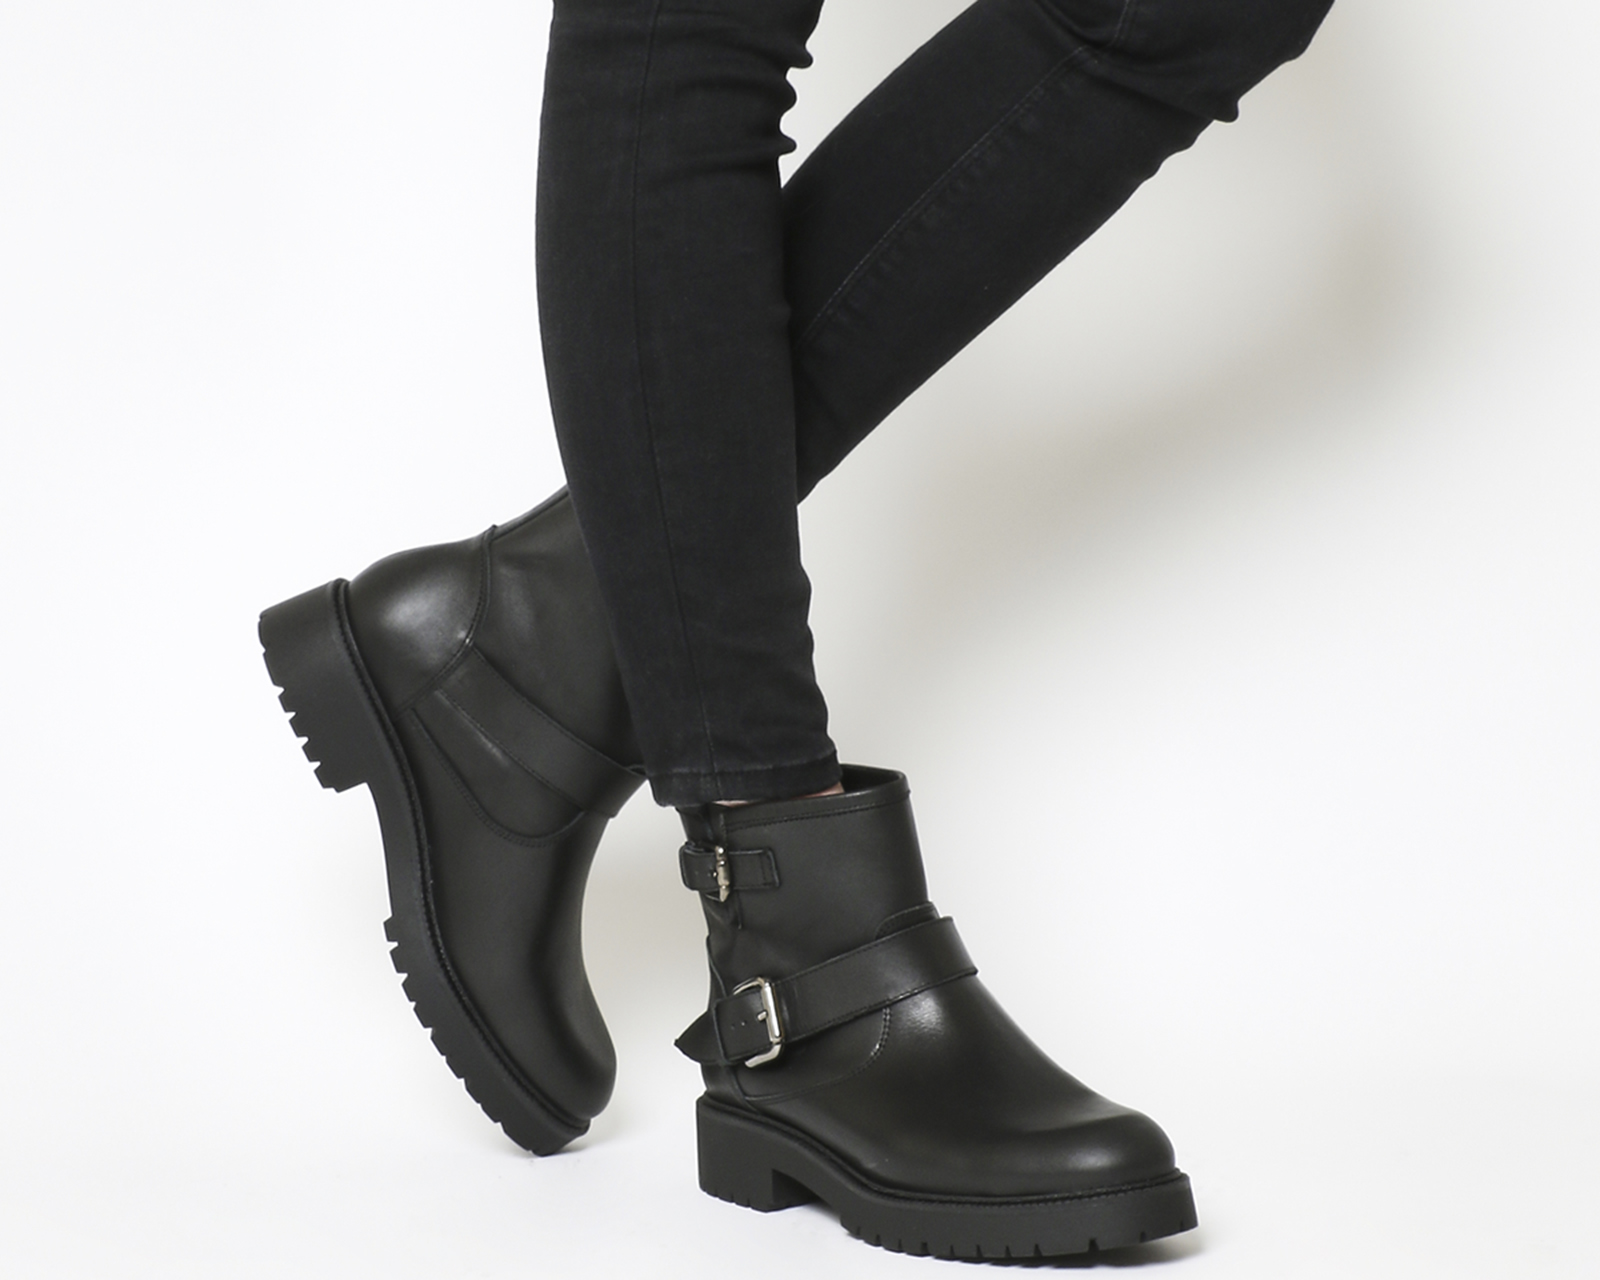 4a2cb2a79c3 Details about Womens Office Amery Buckle Biker Boots Black Leather Gunmetal  Boots